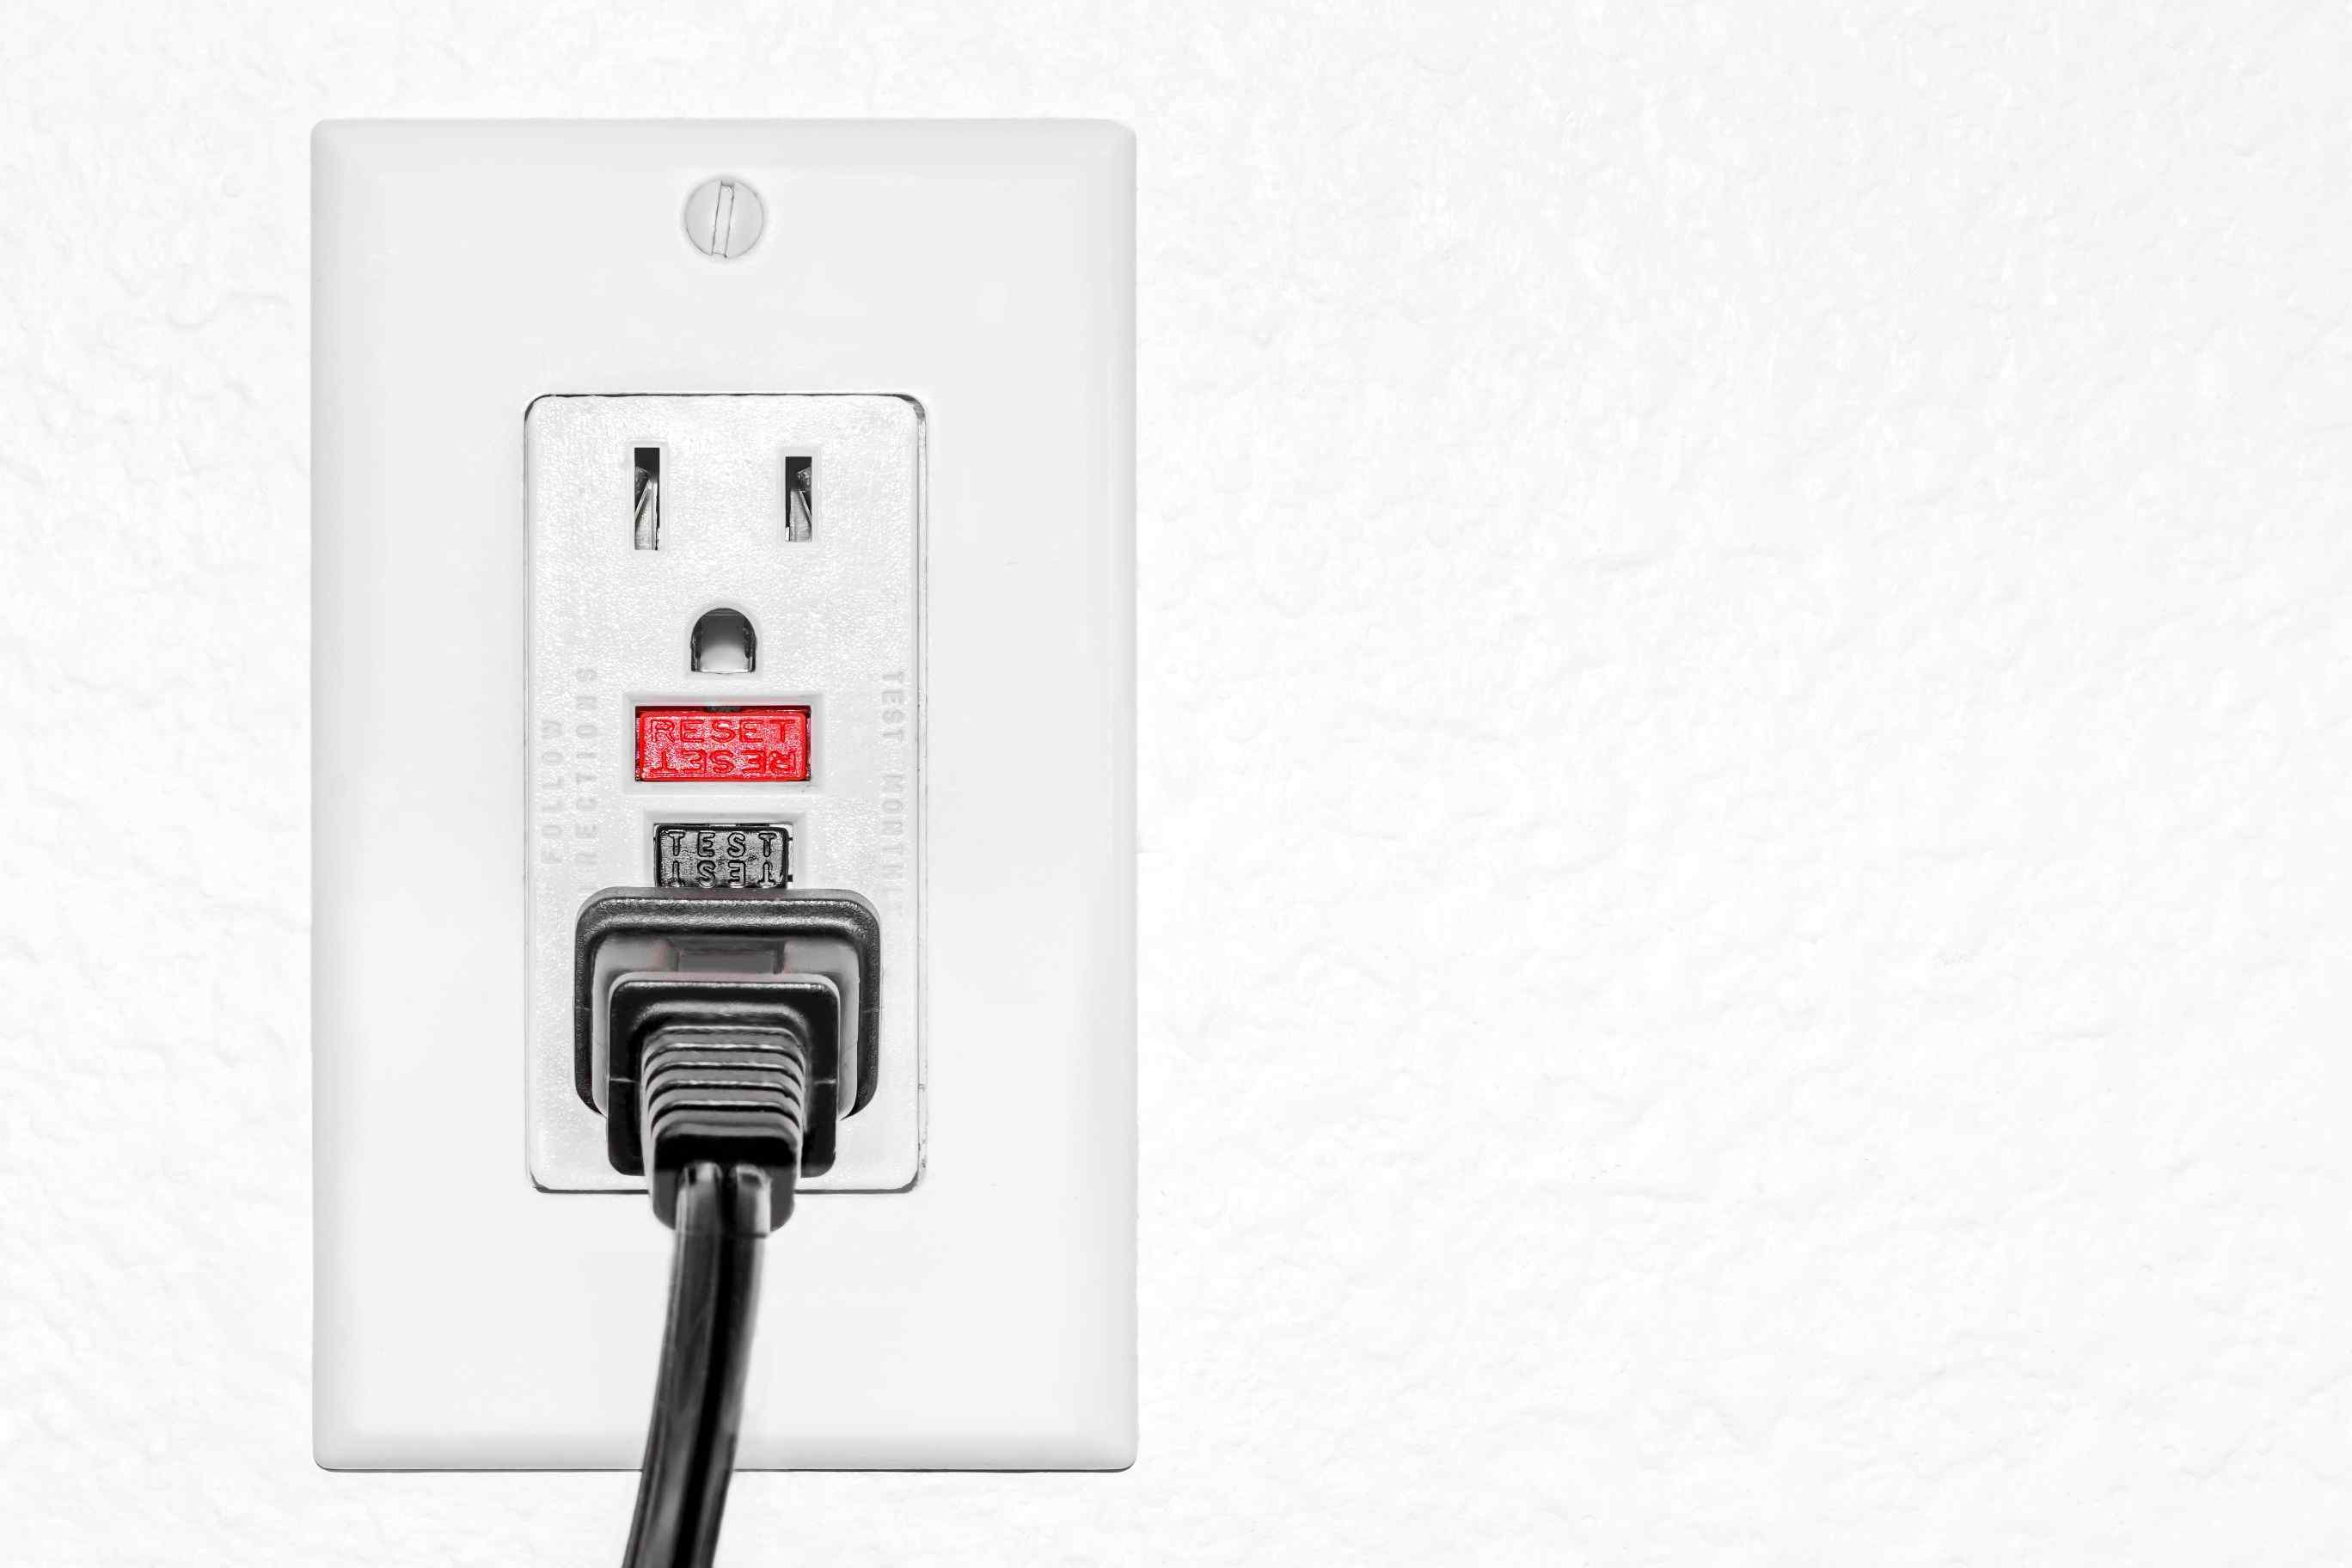 Dedicated Circuits and Power Outlet Repair in Reston VA